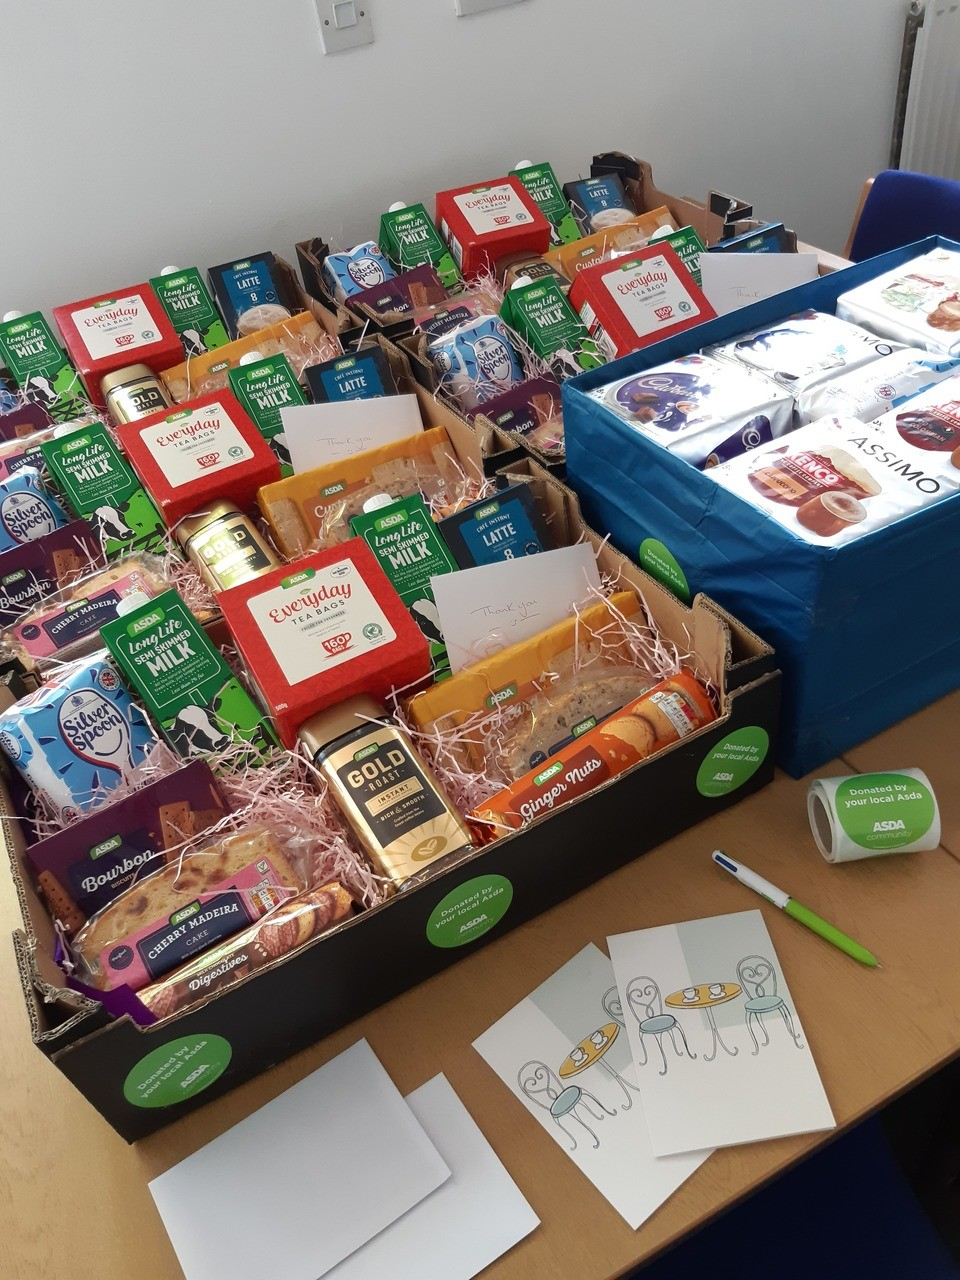 Busy day 🤗 making up some 'Break time hampers' for some of our local unsung heroes plus coffee for our amazing NHS care workers 🥰  | Asda Norwich